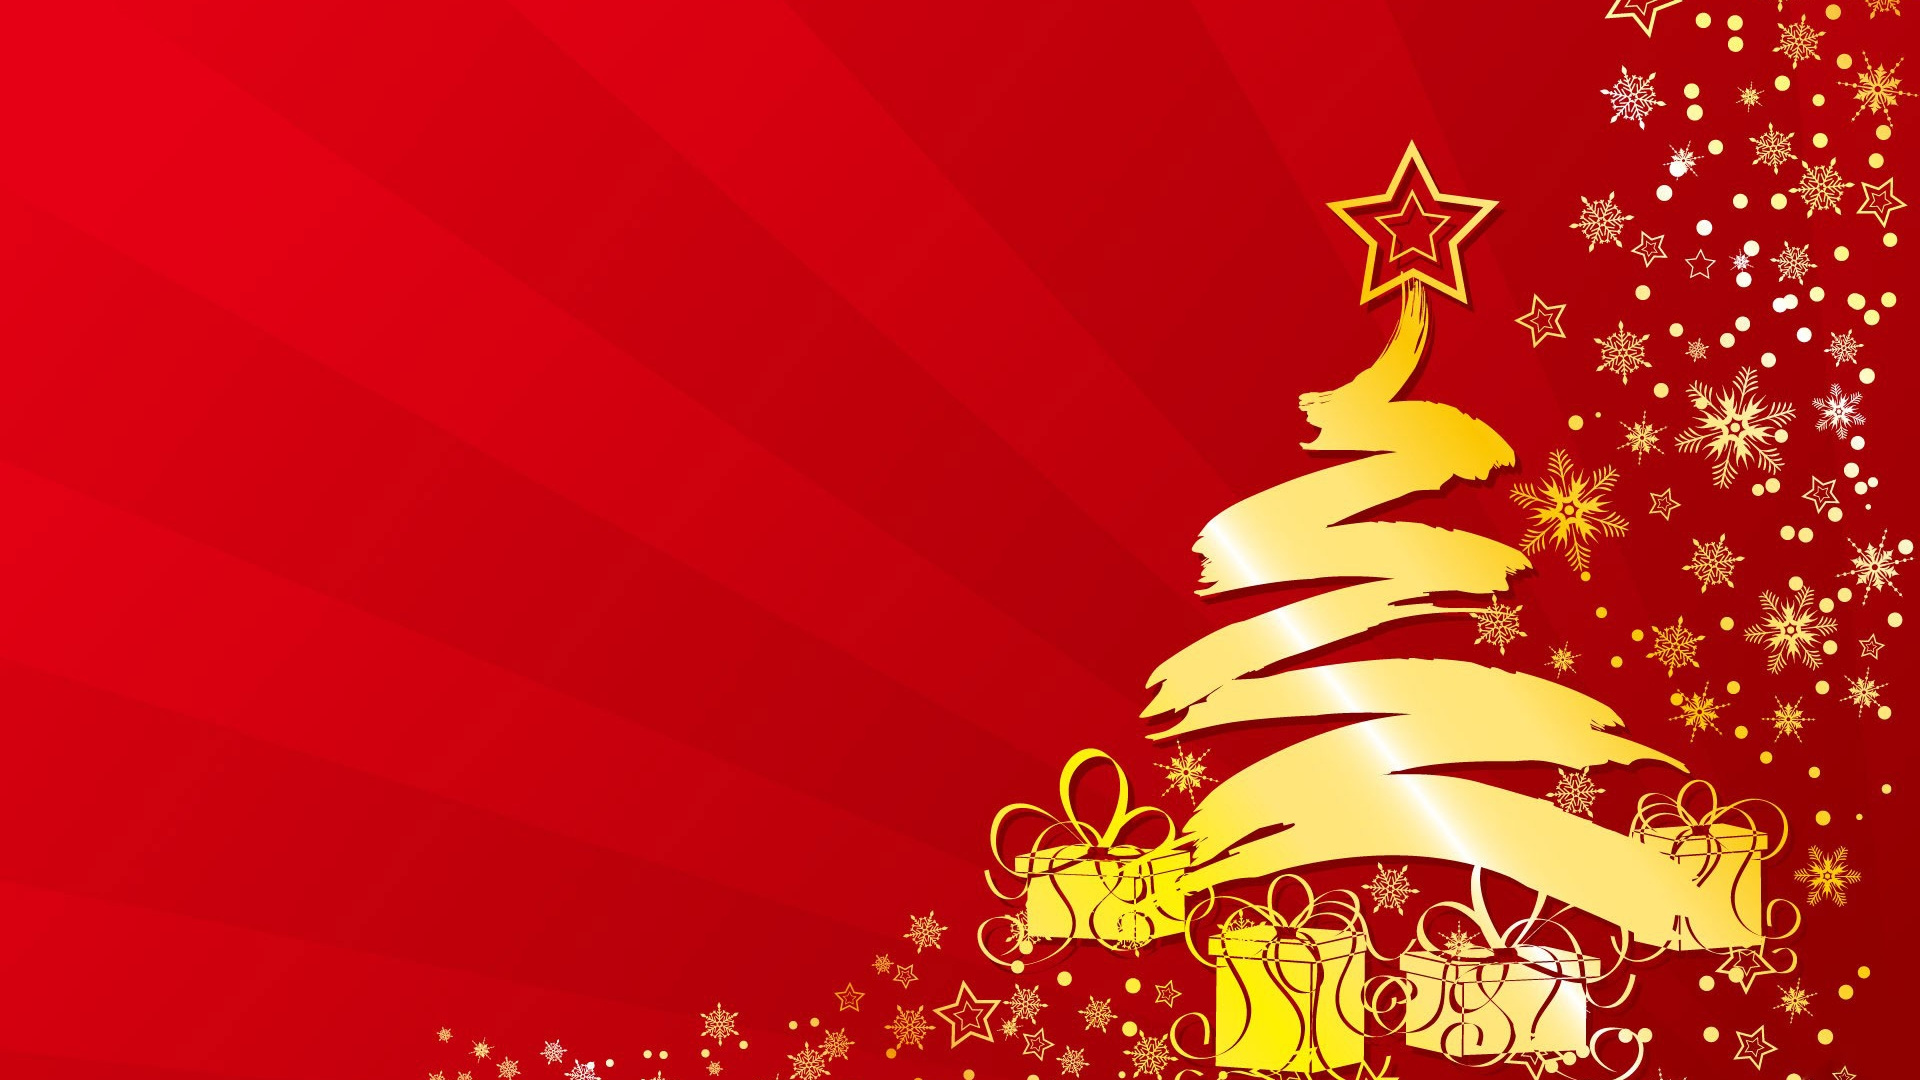 live free live christmas wallpaper desktop desktop backgrounds